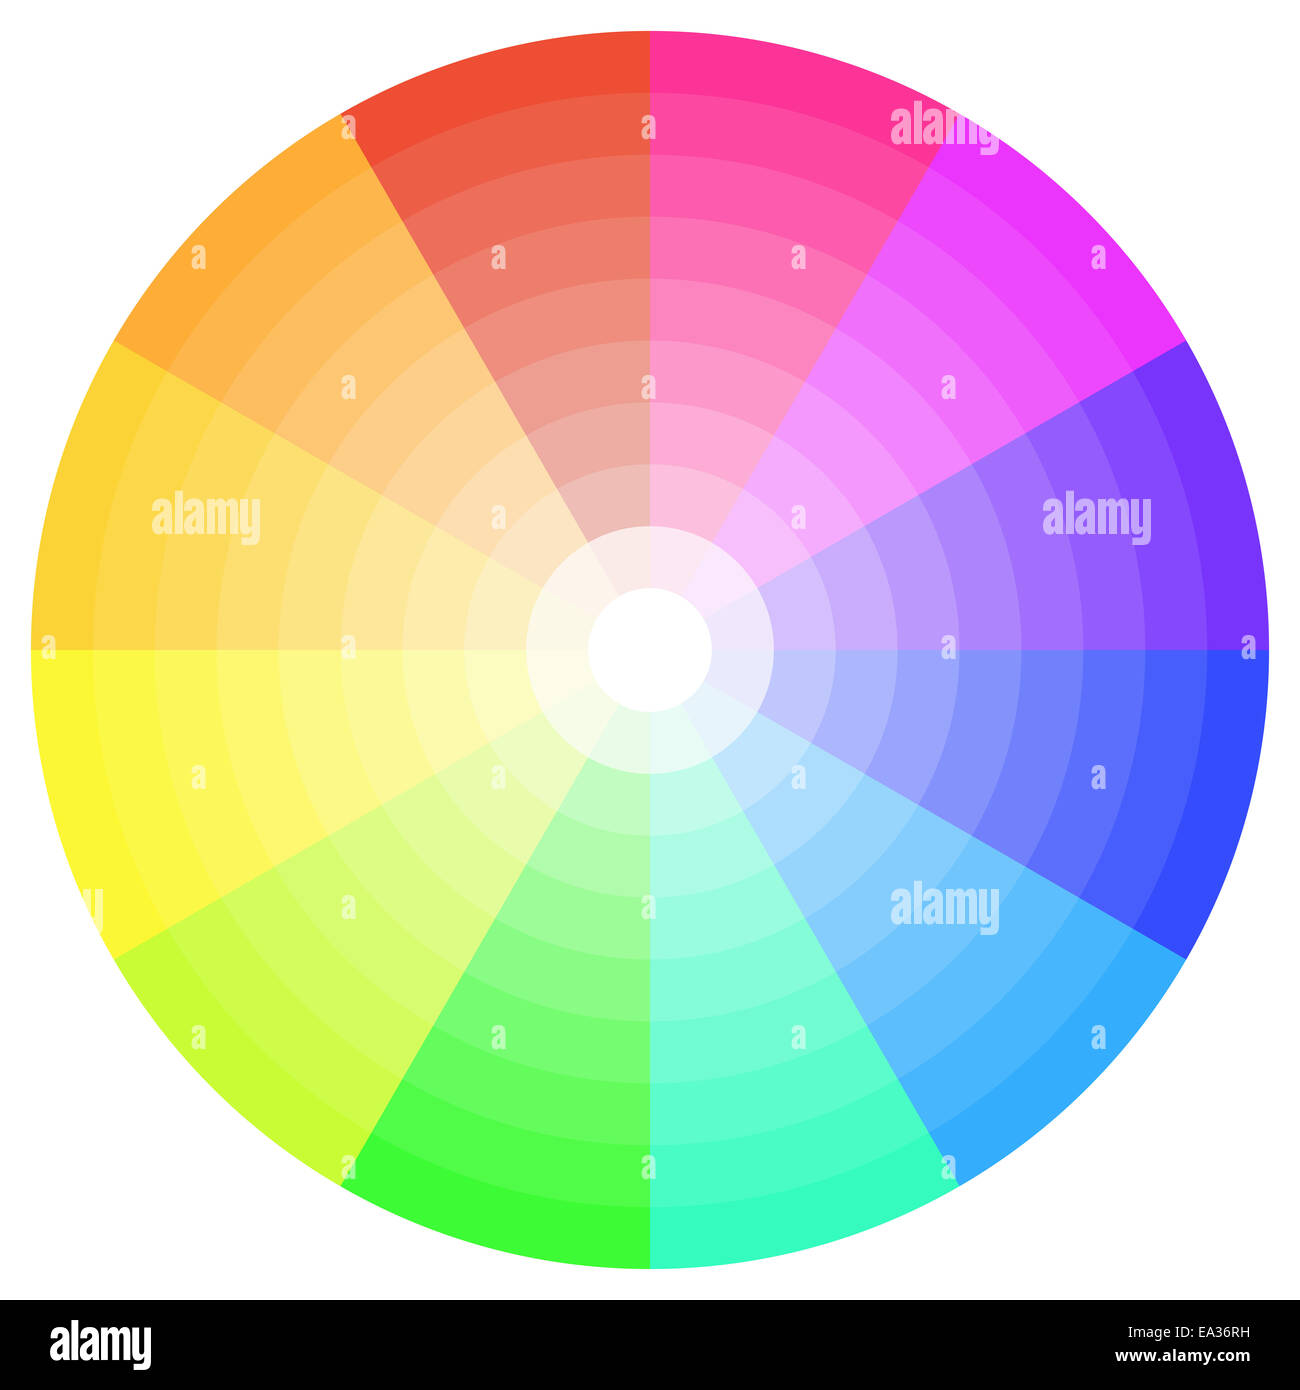 Color Wheel Chart Stock Photos Color Wheel Chart Stock Images Alamy